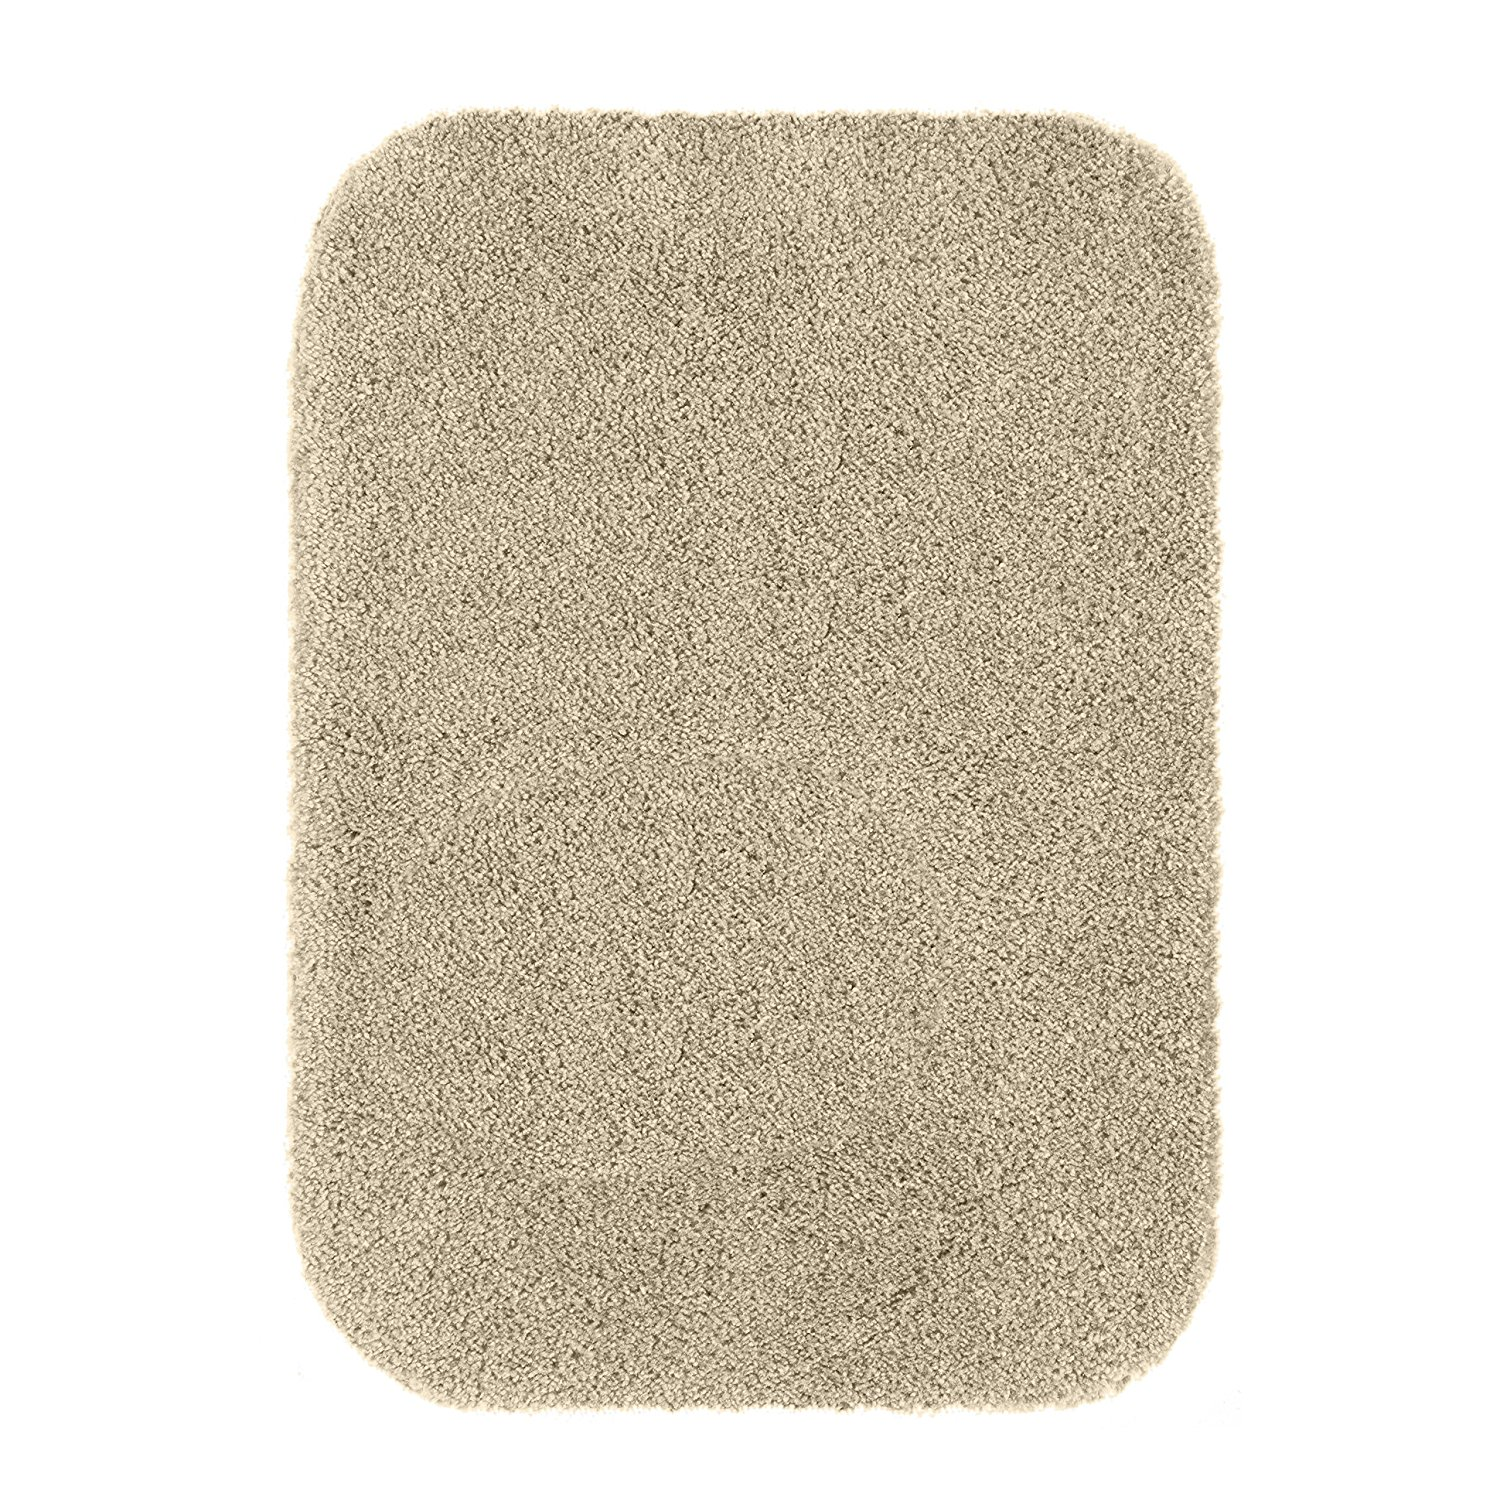 Beige bath rugs cute bathroom mirrors